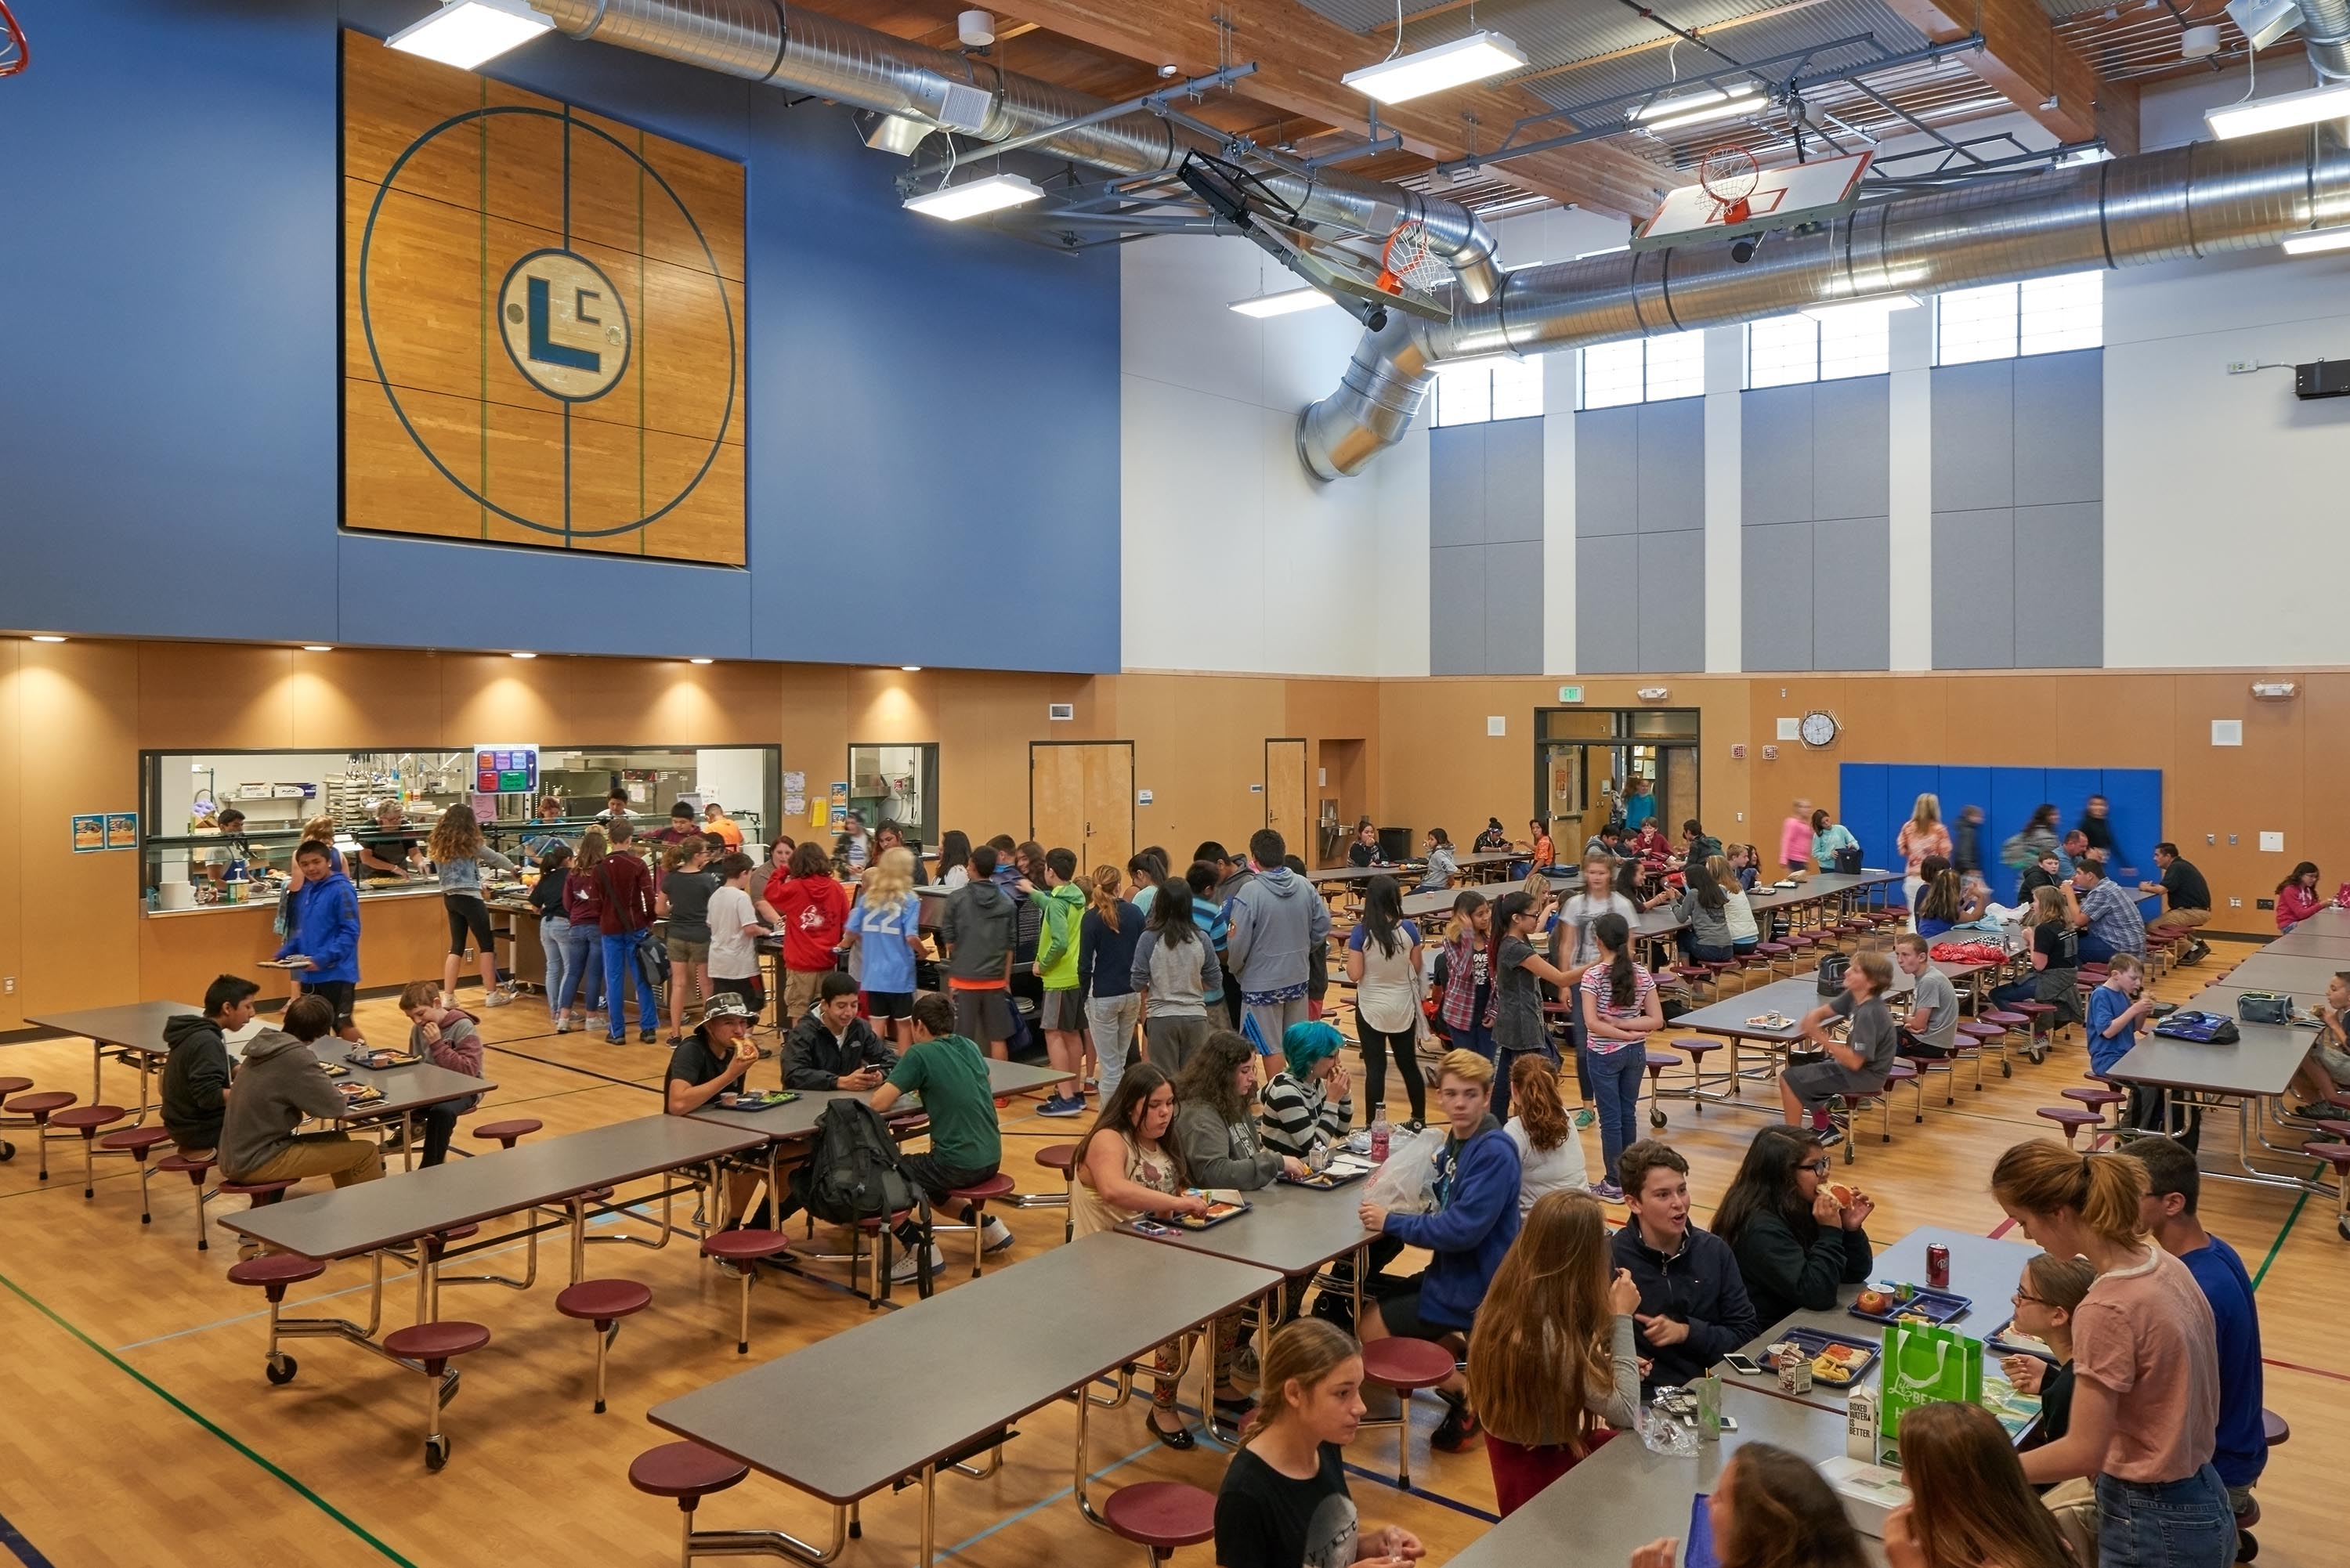 Wide photo of the lunchroom and students eating.